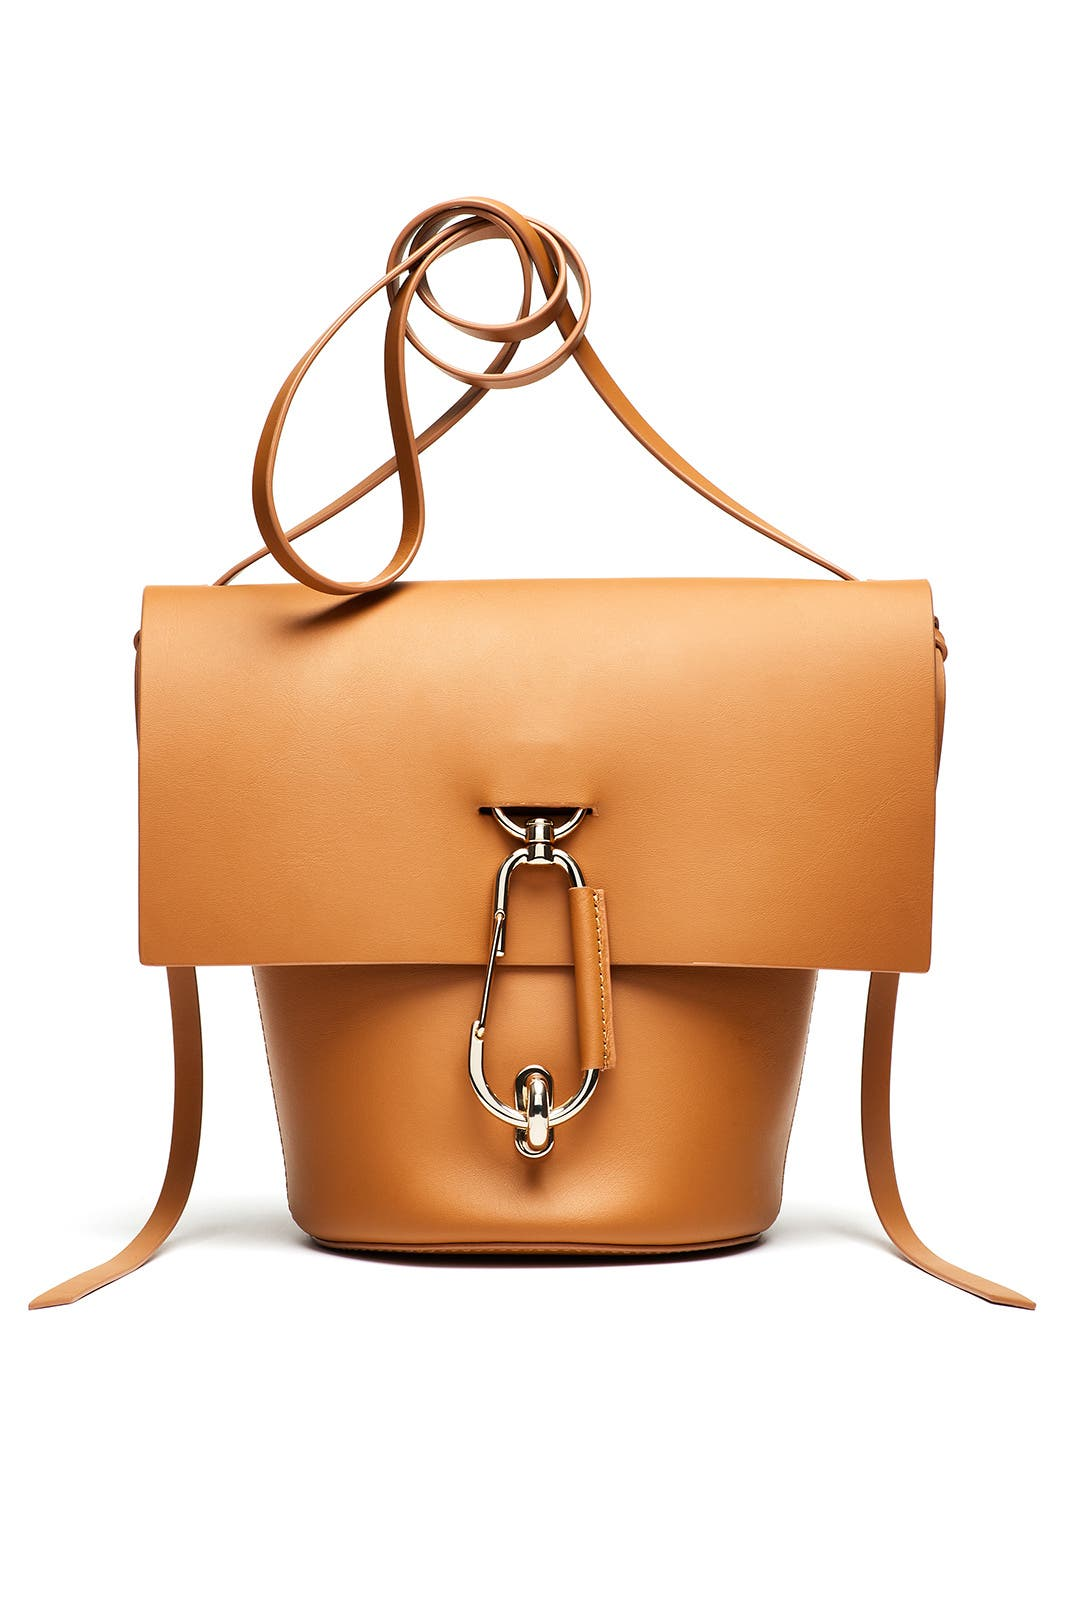 ZAC Zac Posen Handbags. Read Reviews. Camel Belay Crossbody 317c446927831